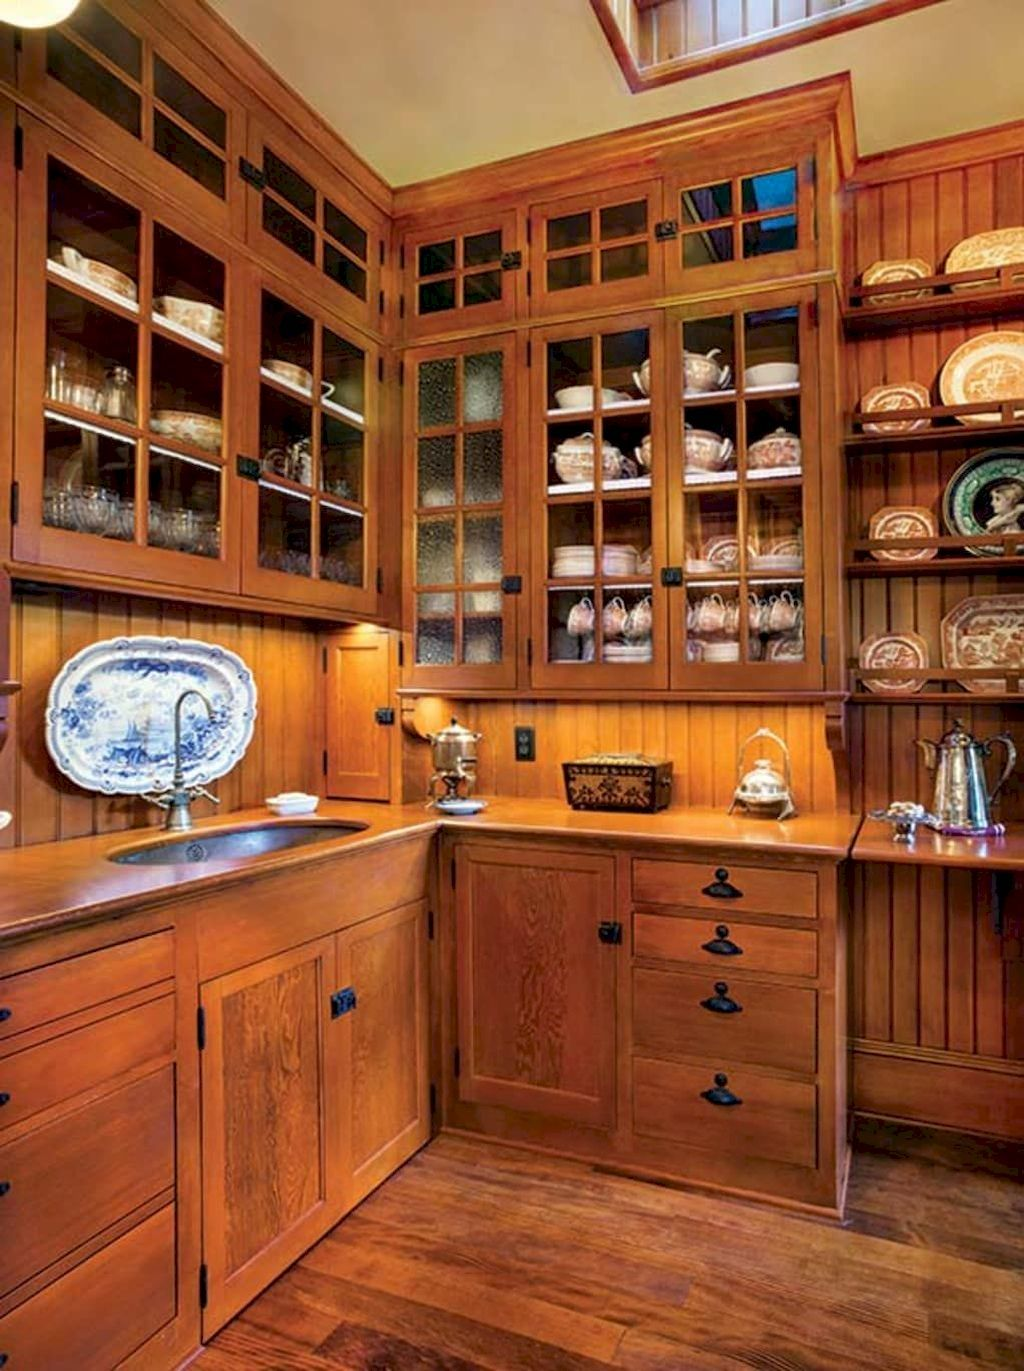 Kitchen Pantry Ideas That Will Improve Your Kitchen Renovation Value on brown crown molding kitchen, modern victorian kitchen, victorian house trim exterior, victorian kitchen cabinets,